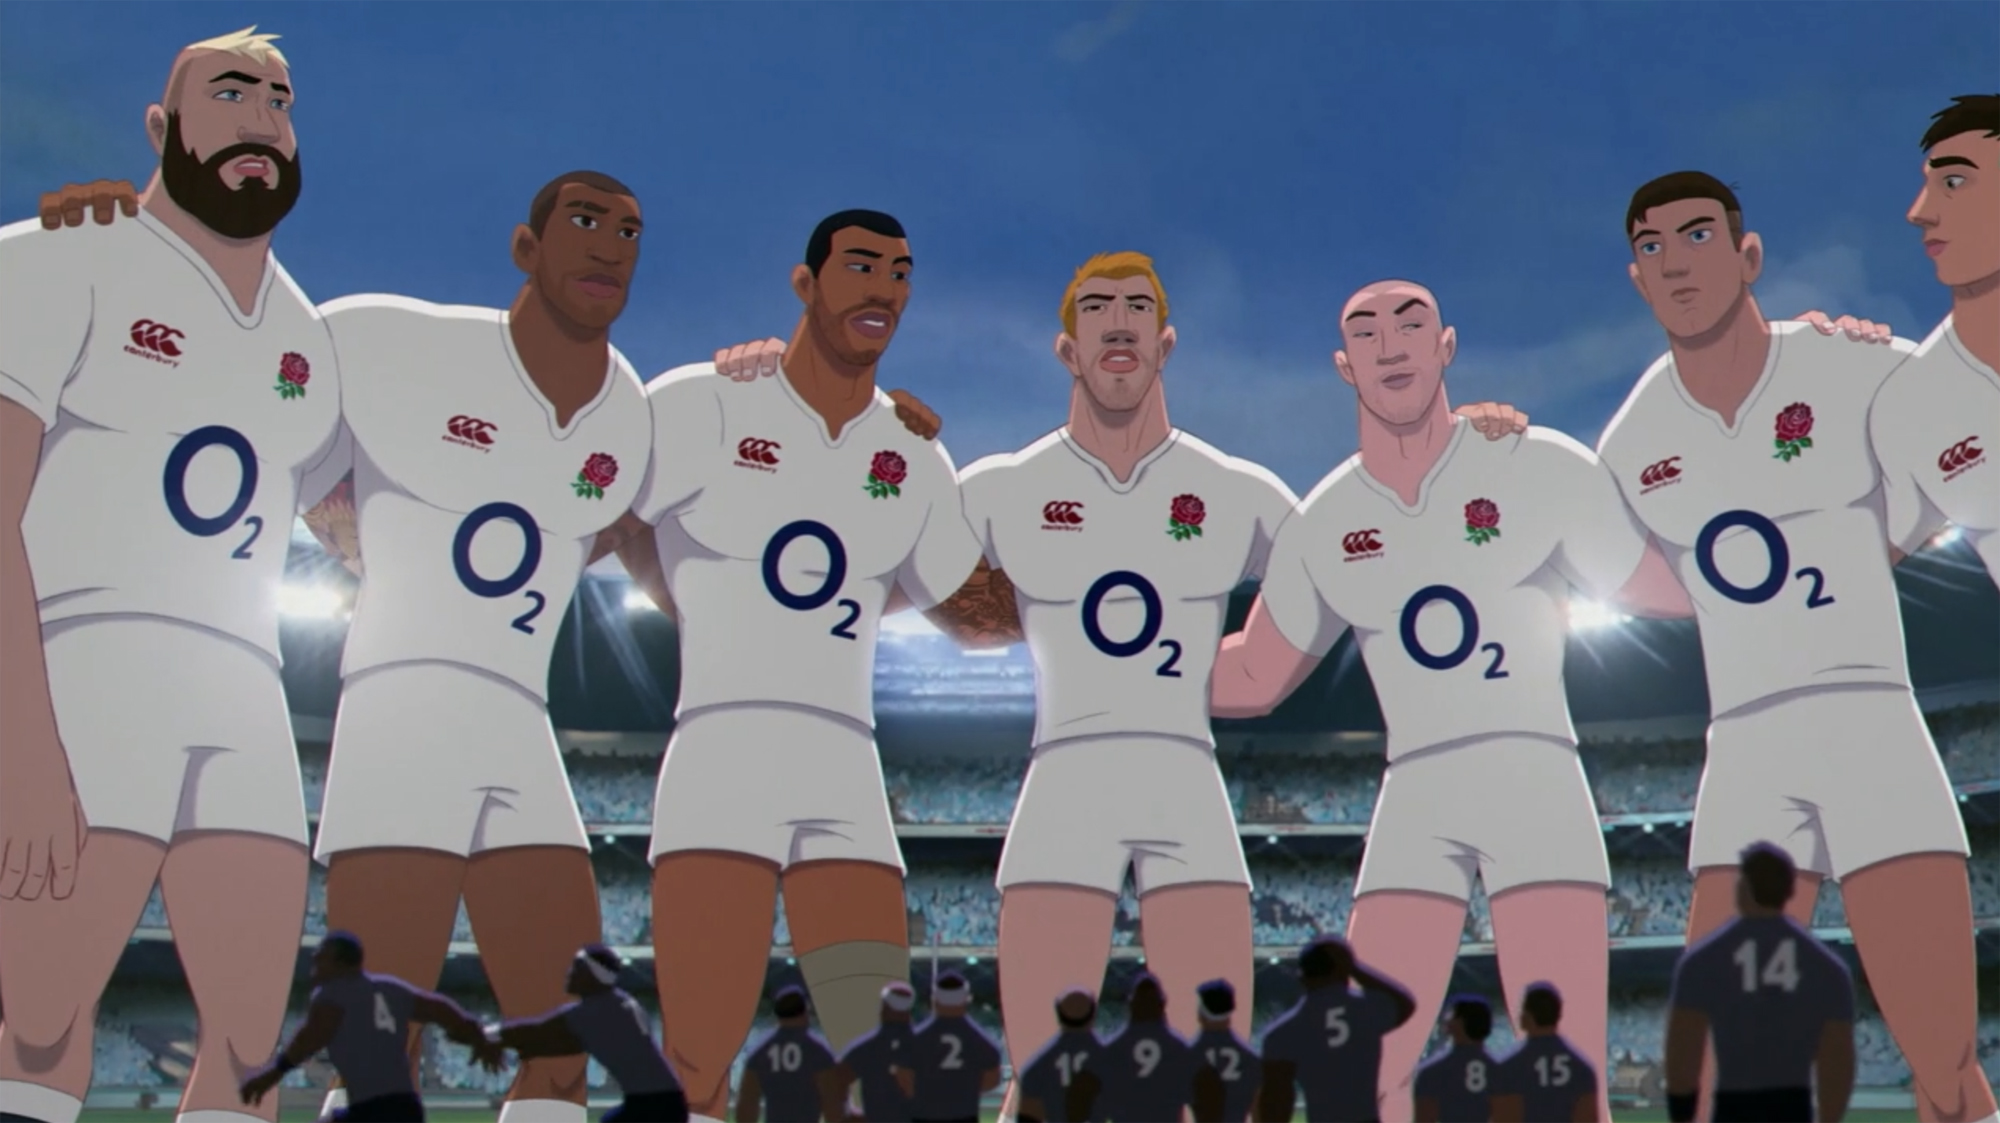 The England team as they appear in O2's ad